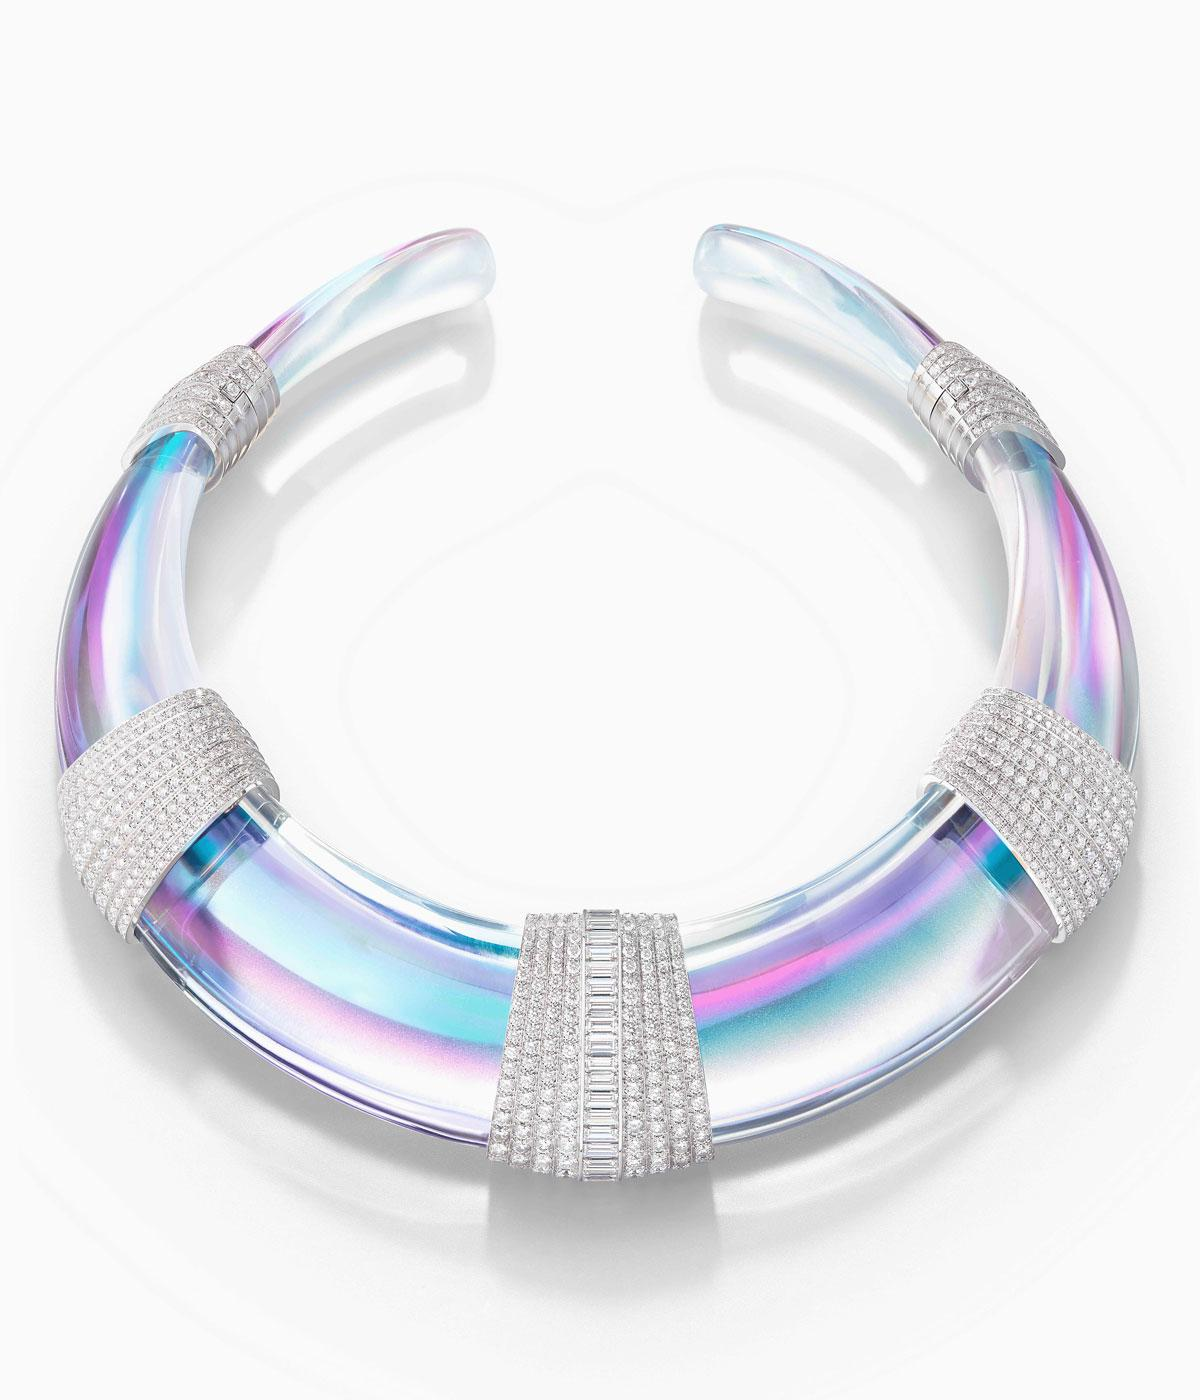 Holographic necklace with diamonds on it